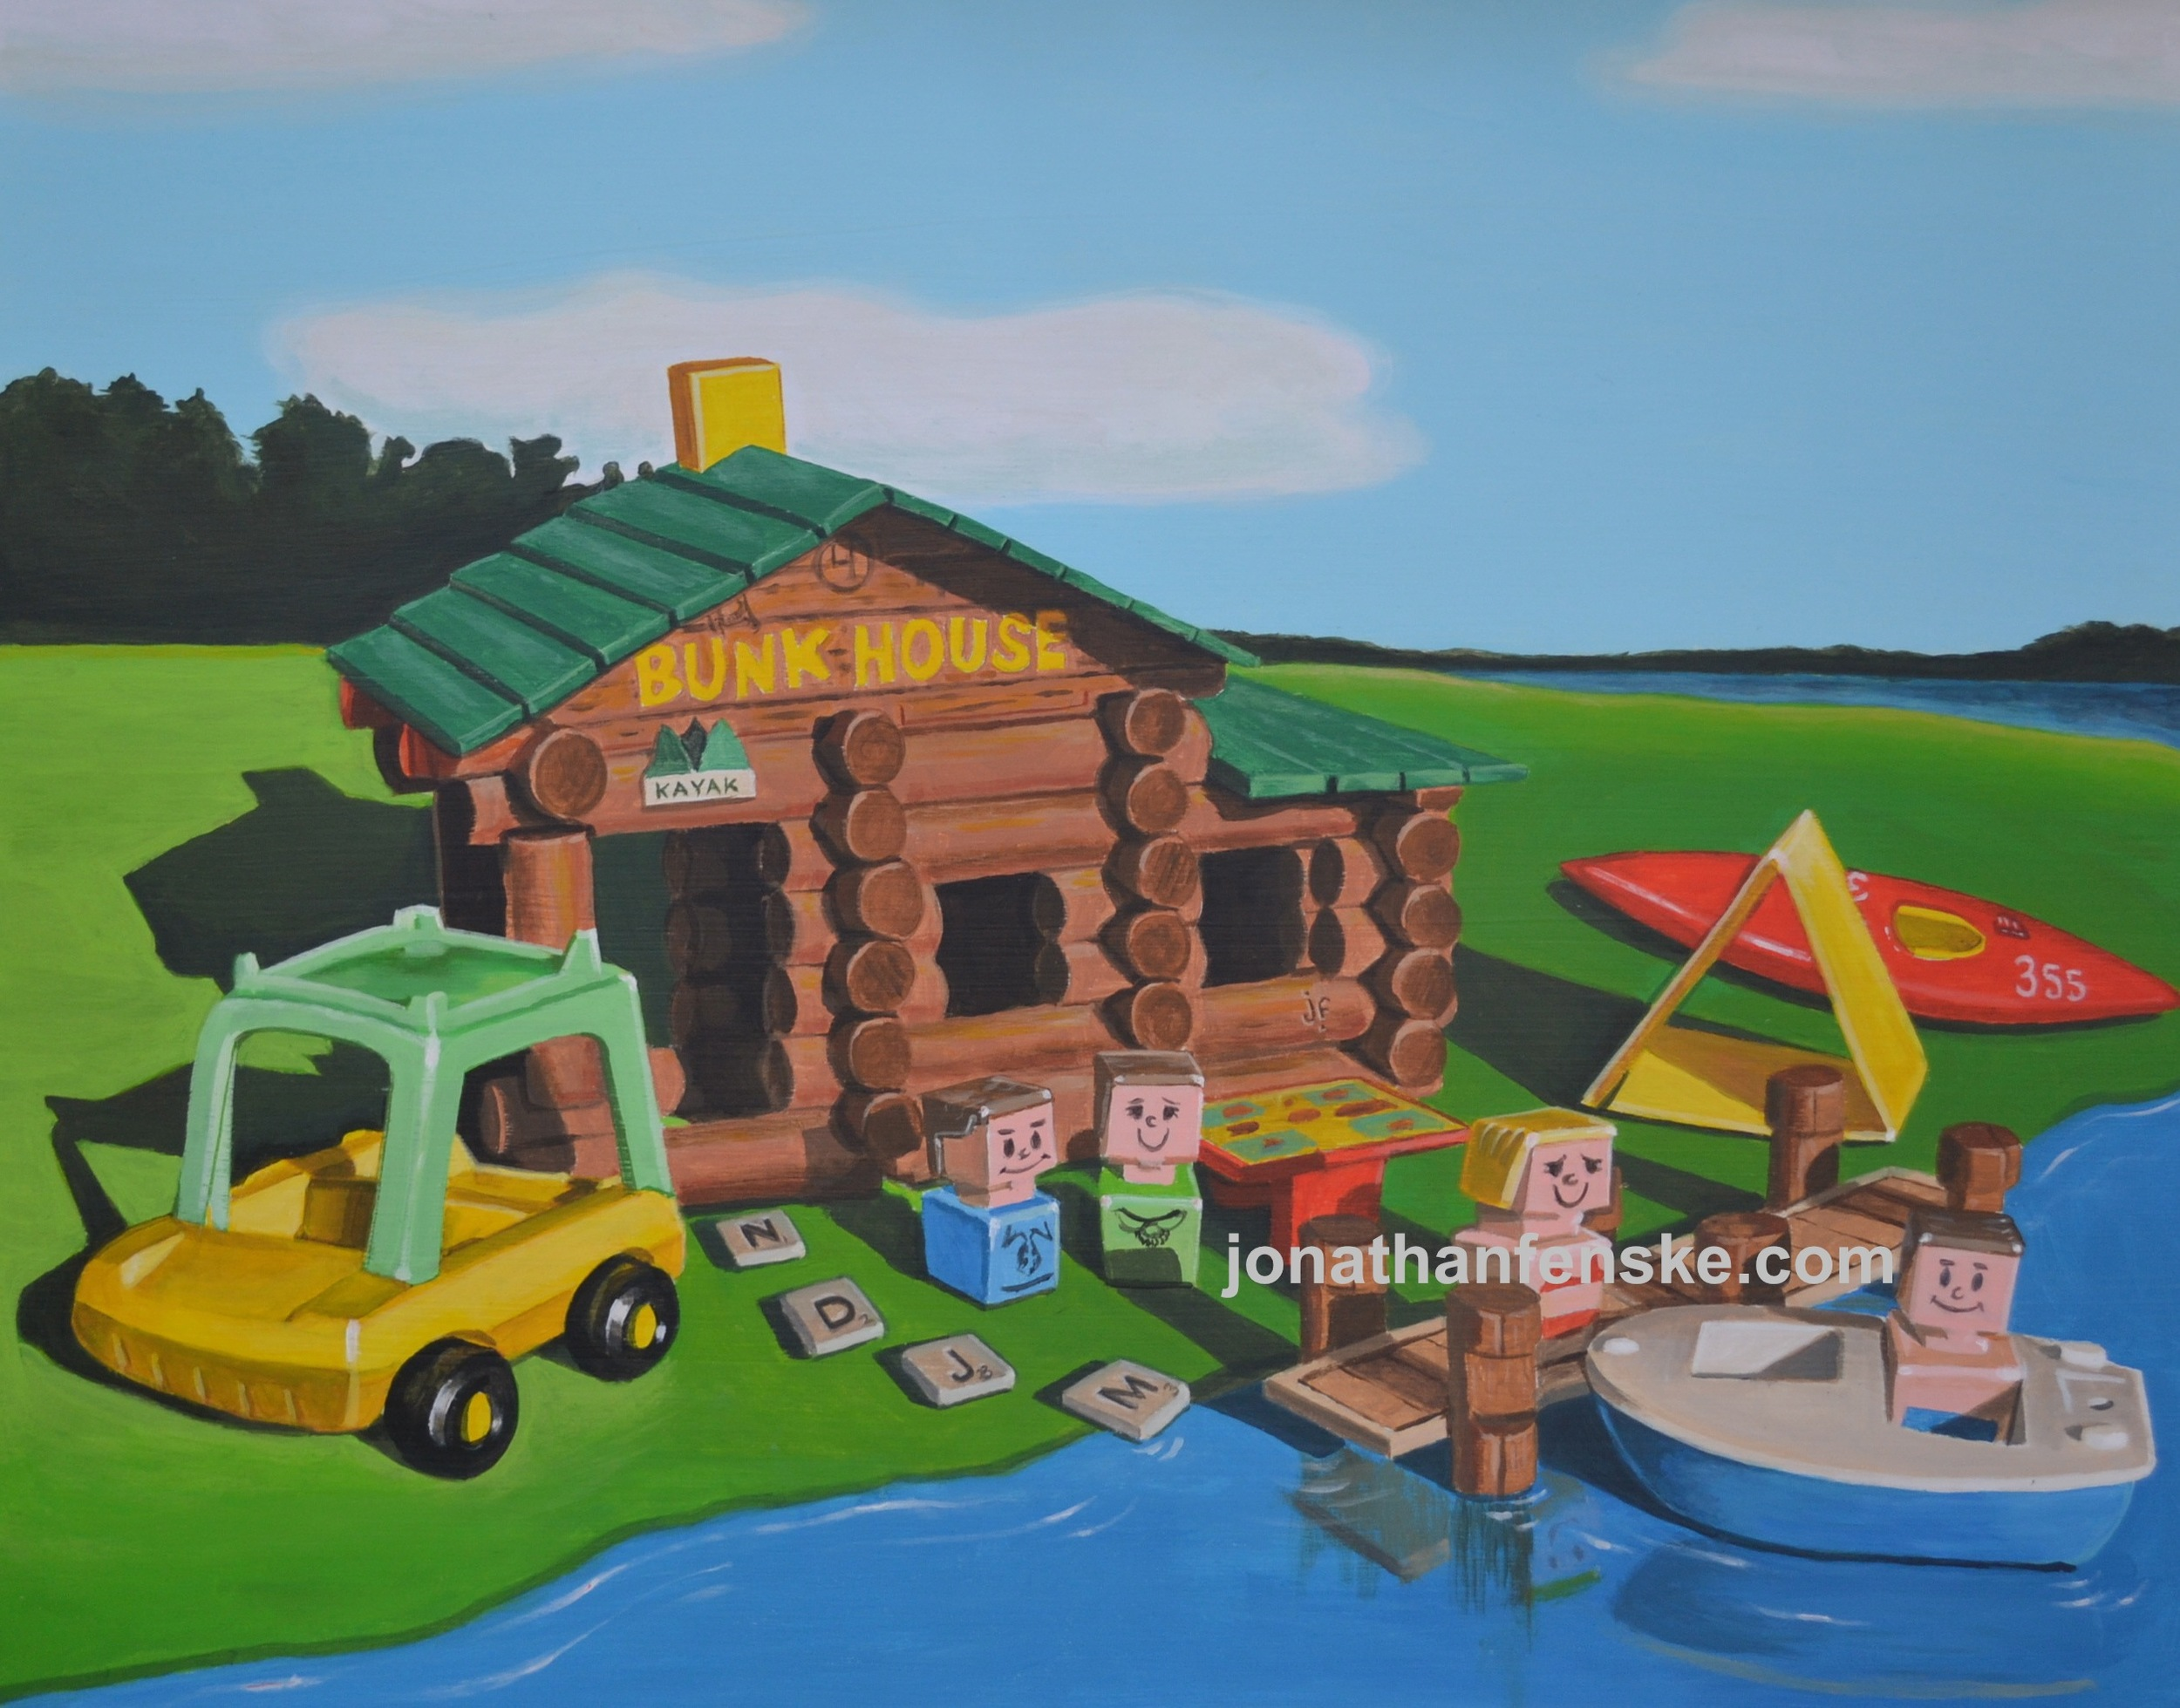 Fisher-Price-painting-by-Denver-artist-Jonathan-Fenske